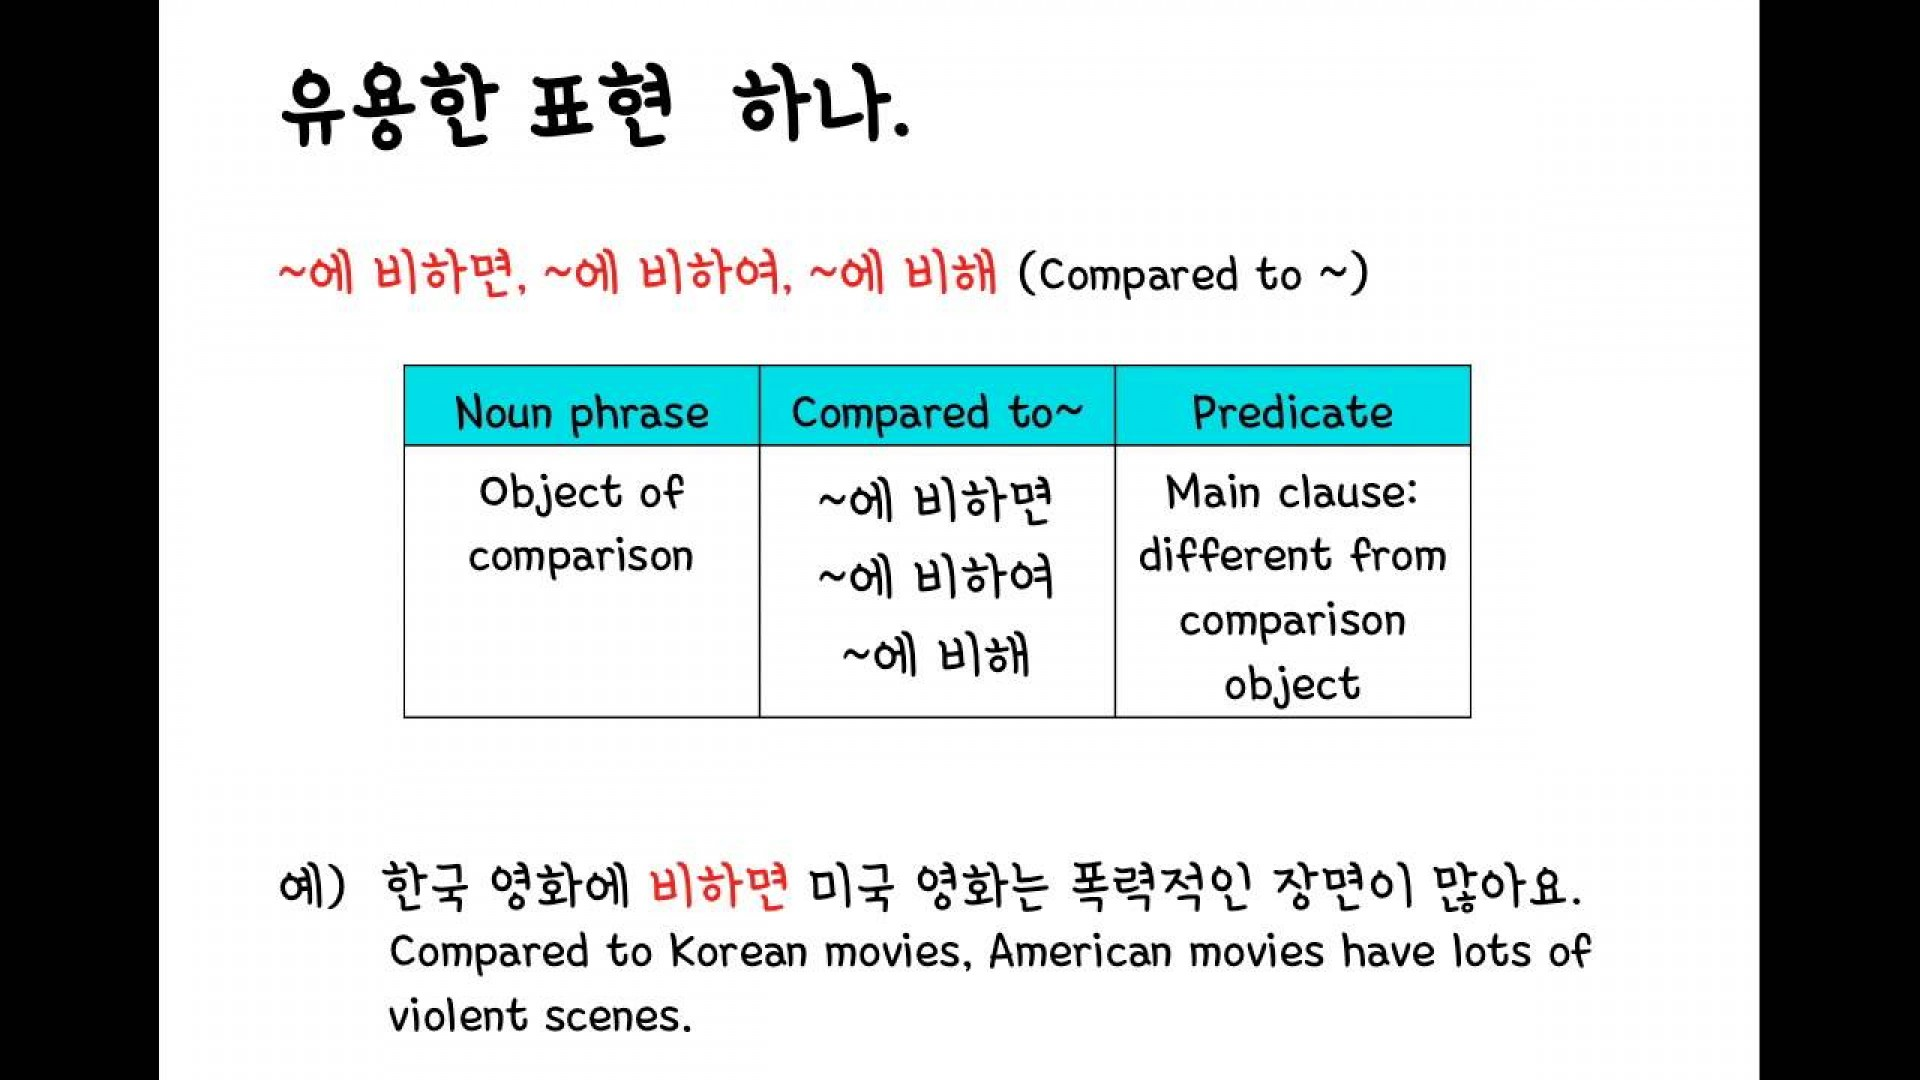 007 Essay Example Korean Stirring Examples About Myself Contest 1920